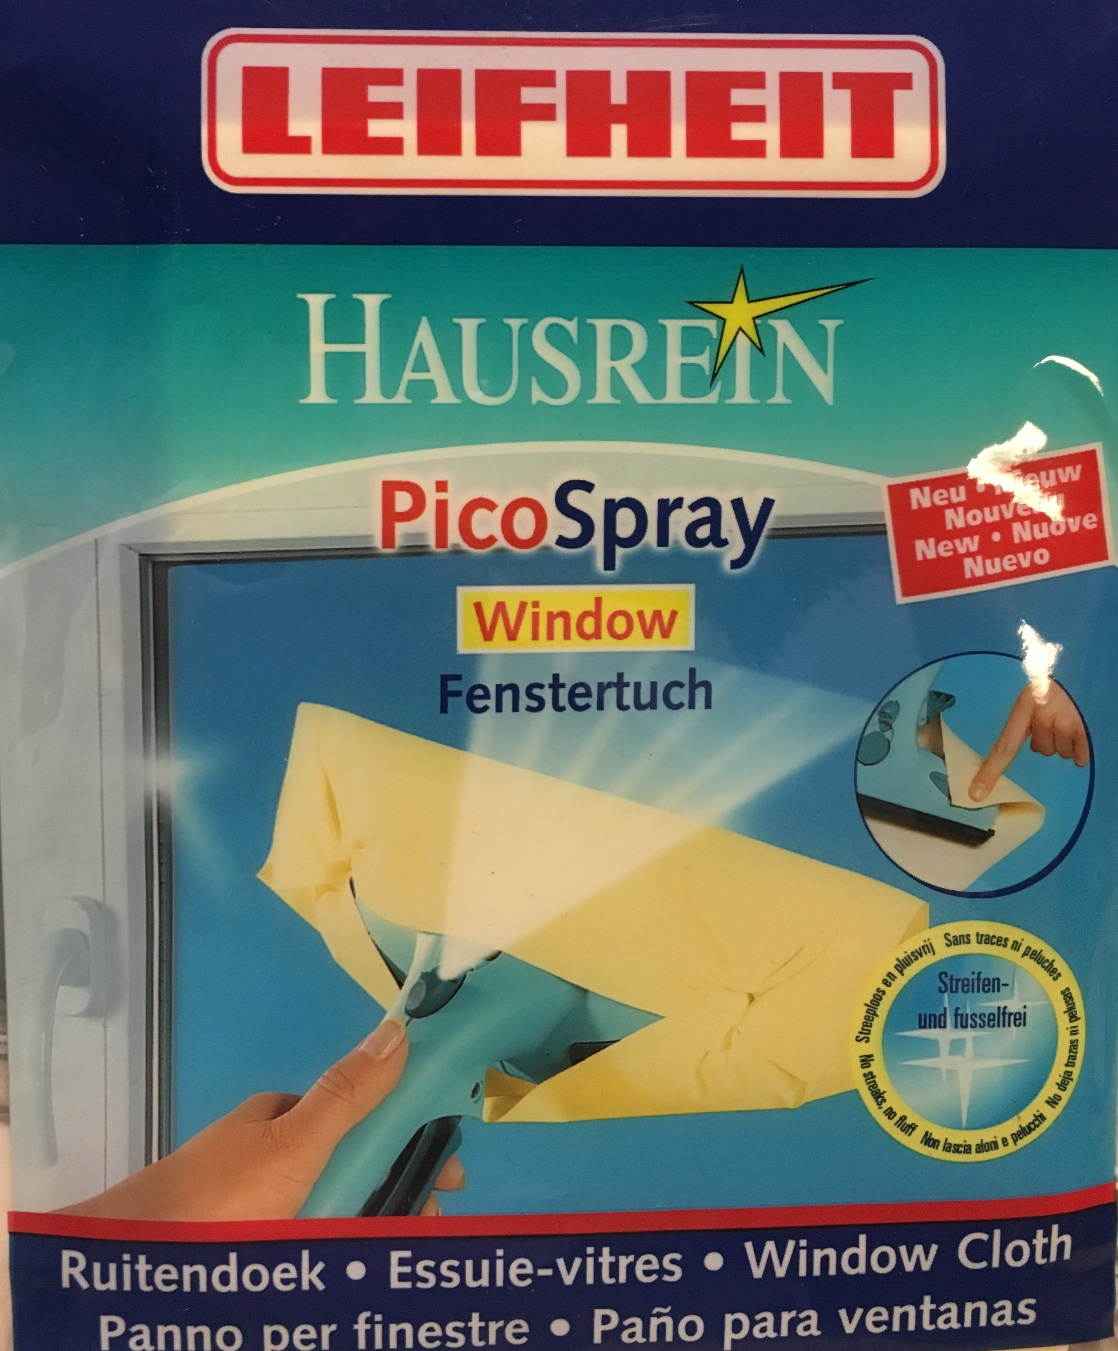 Leifheit Ersatztuch Window Pico Spray Fensterwischtuch 51172